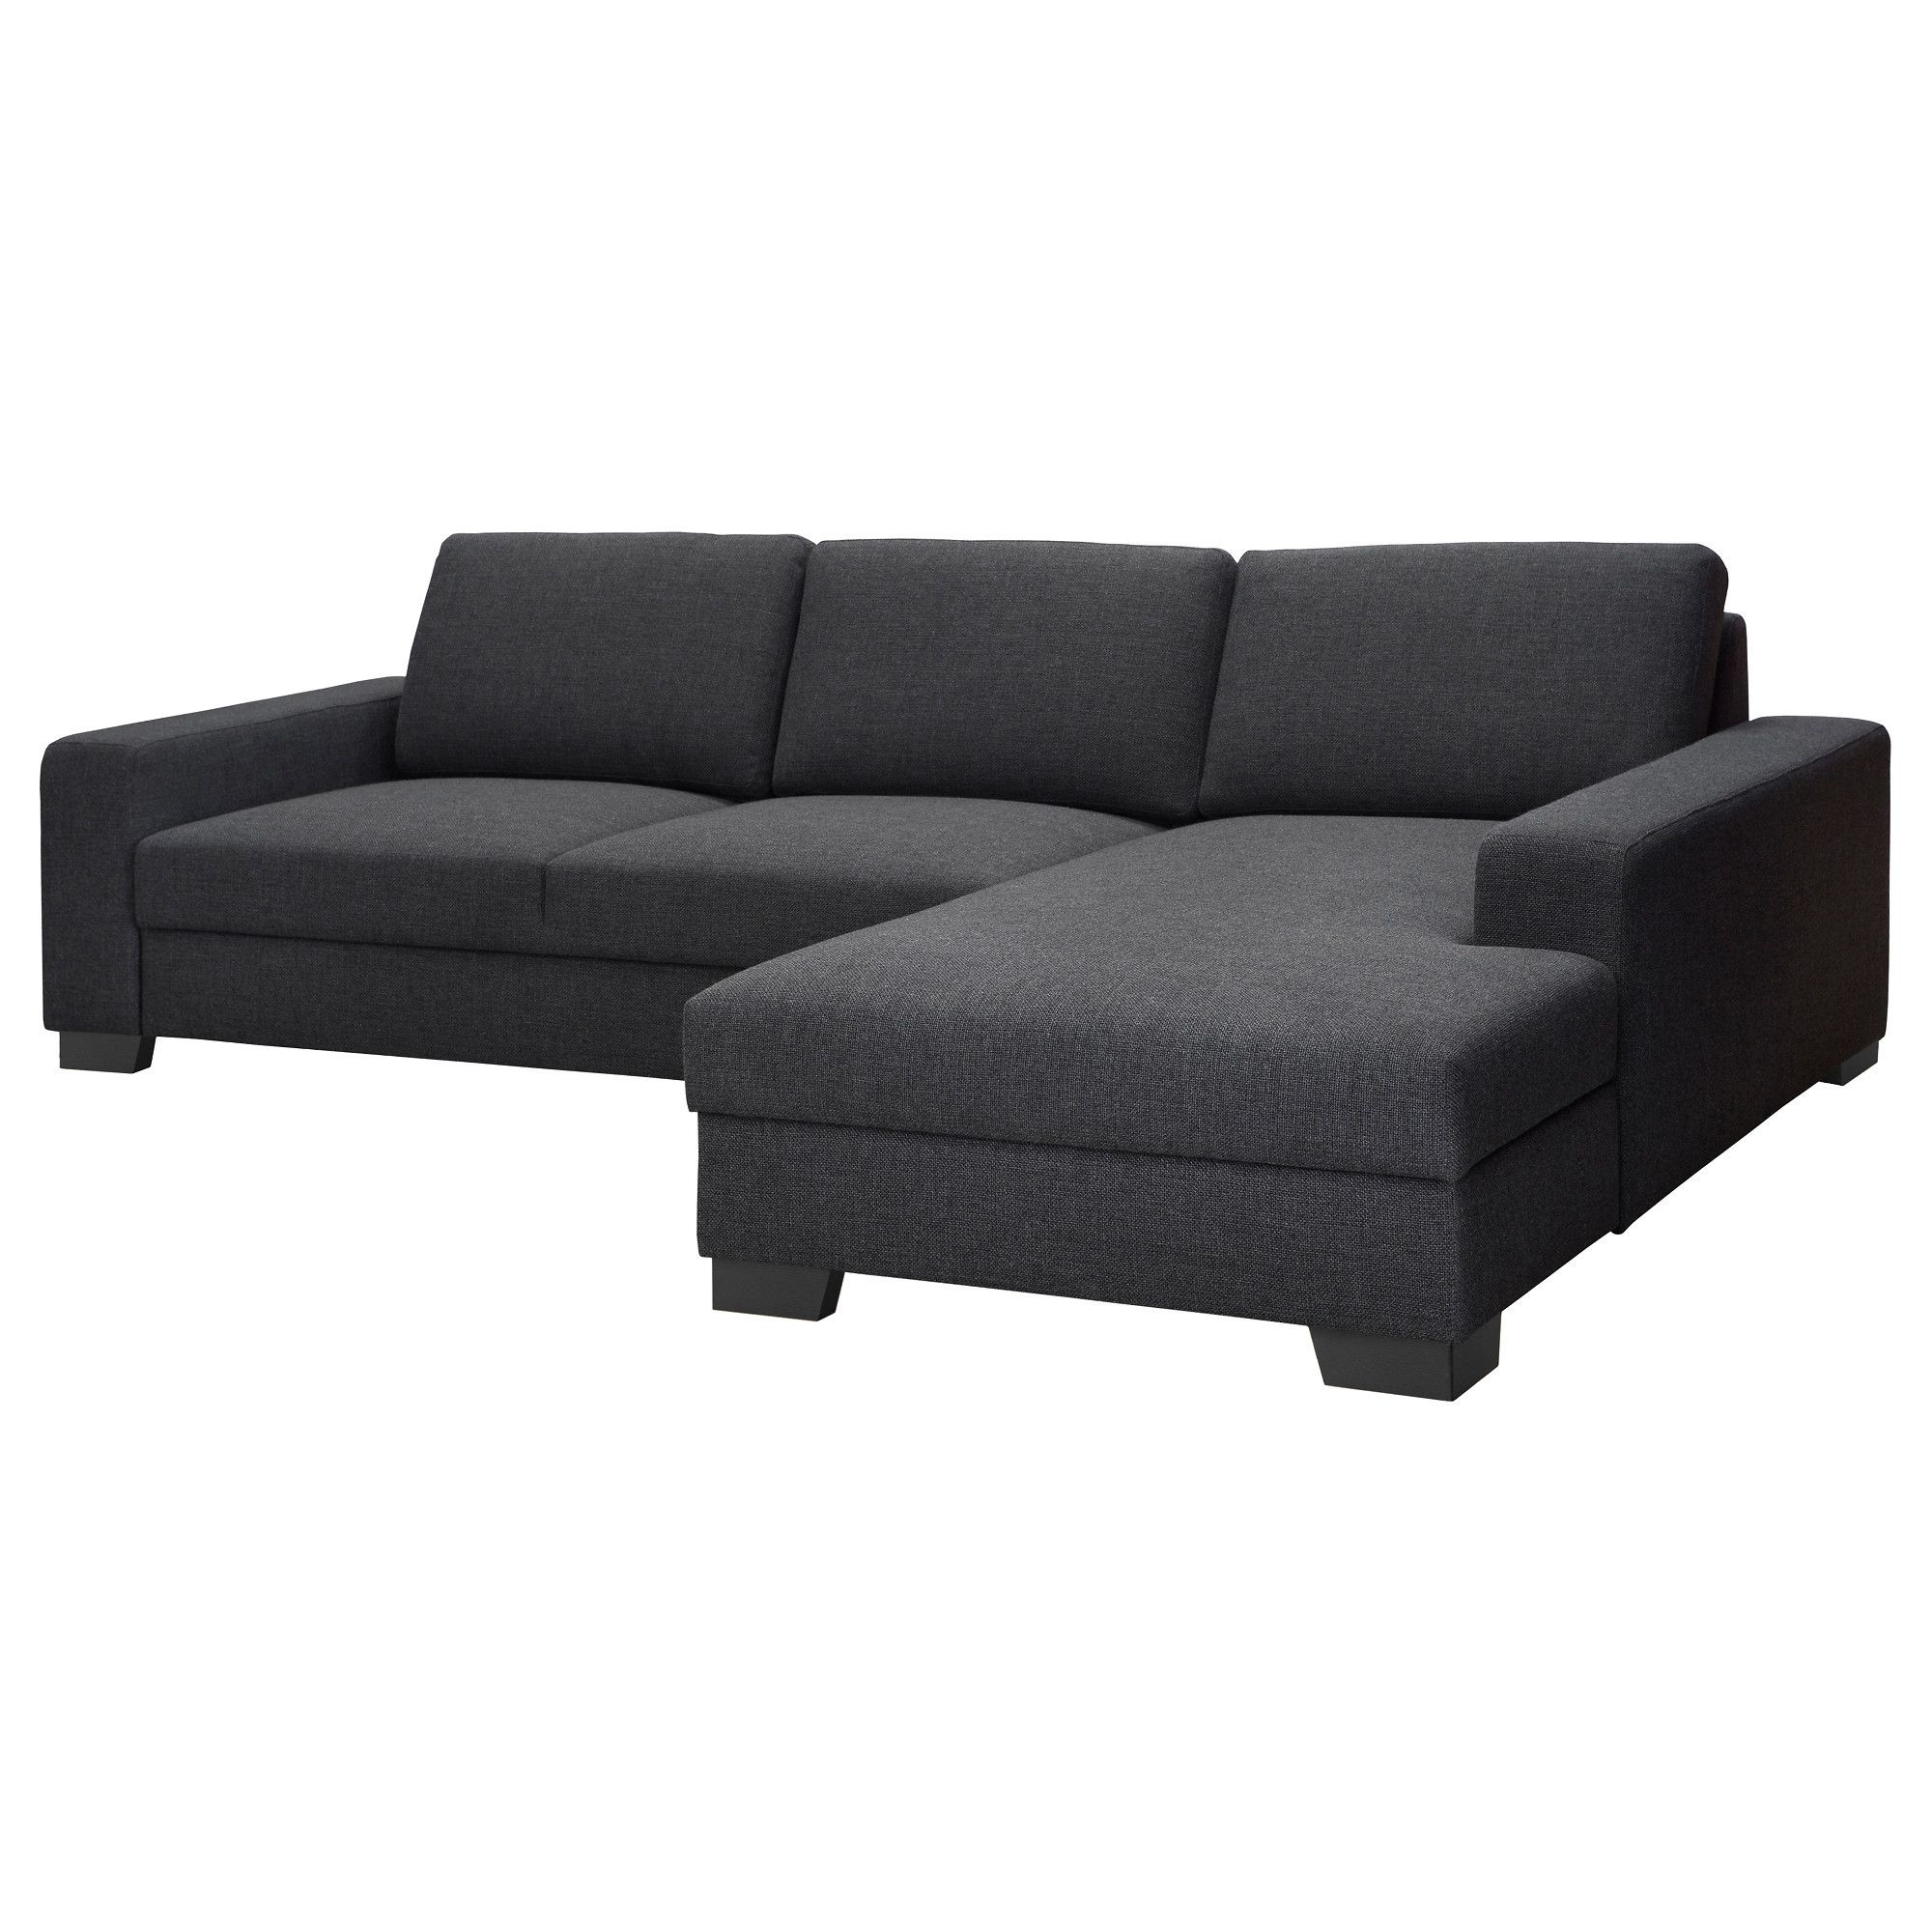 Poco Sofa Mit Schlaffunktion Awesome Home Decor Idee N Couch Grau Stoff Pocosofa321 Pocosofaangebote Pocosofaarles Pocosofaberzug Pocosofabraun Pocosofag